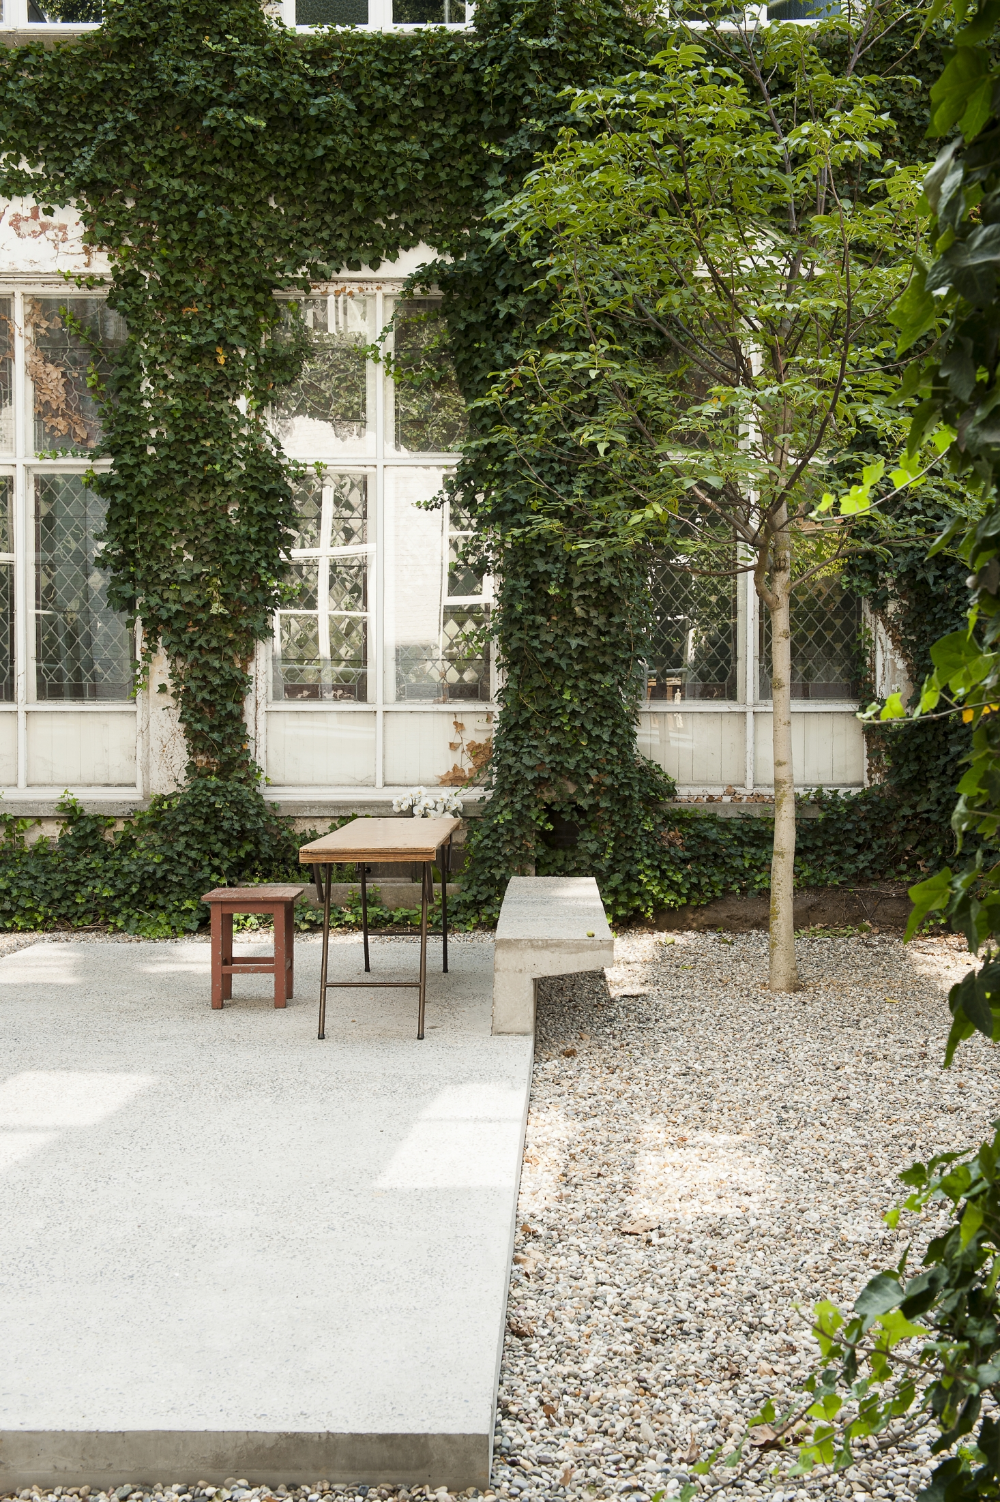 Steal This Look An Artful Gravel Garden in Antwerp is part of Gravel garden, City garden, Urban garden, Backyard landscaping, Patio garden, Garden inspiration - One of our favorite gravel gardens is also one of the most simple  The courtyard in the Antwerp galleryhome of gallerist Veerle Wenes designed by Lens°Ass